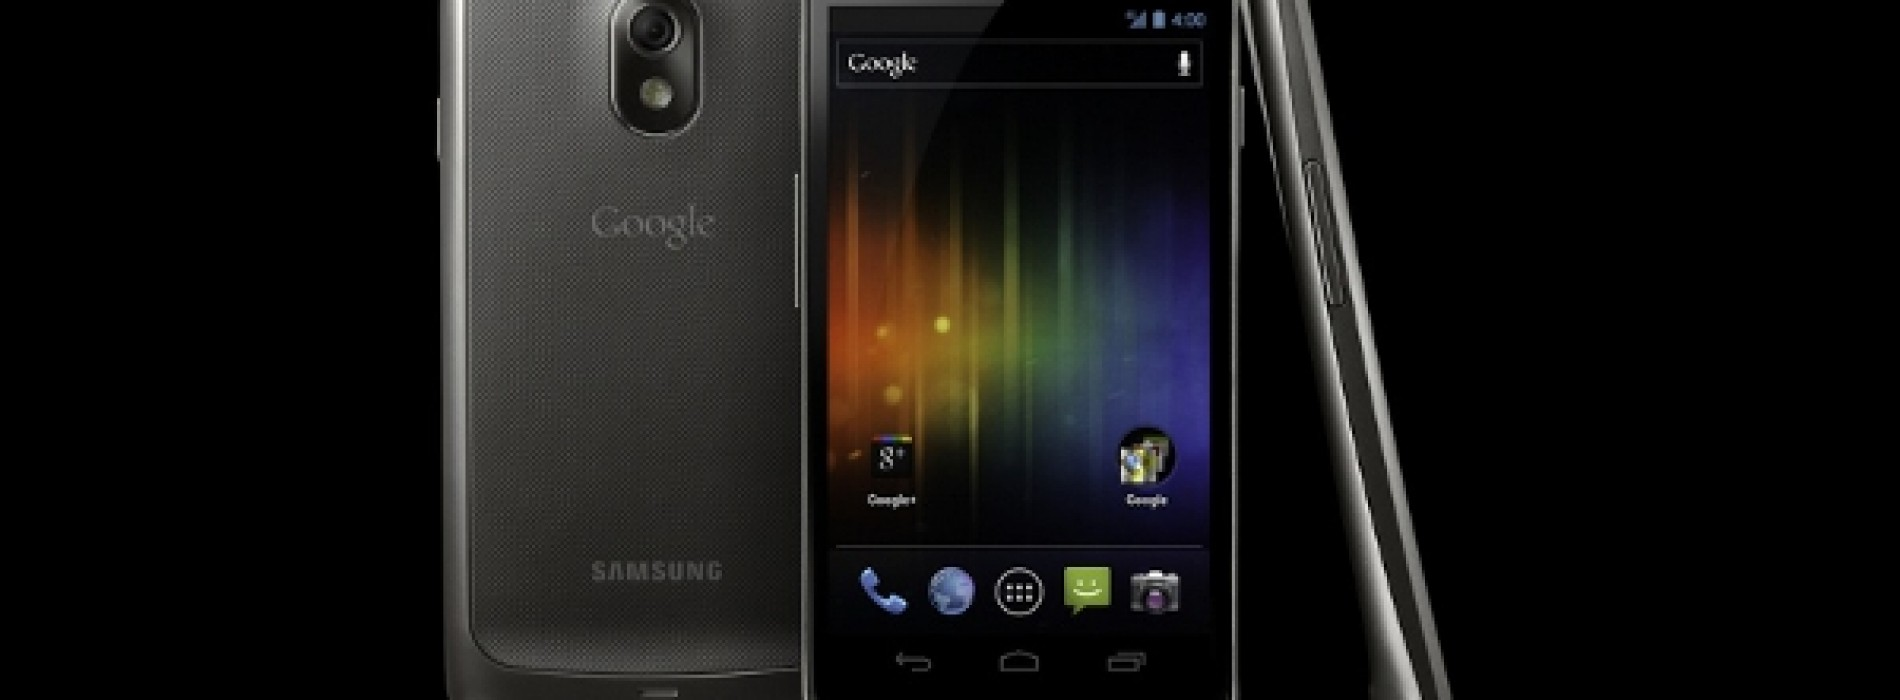 Samsung Galaxy Nexus Arrives